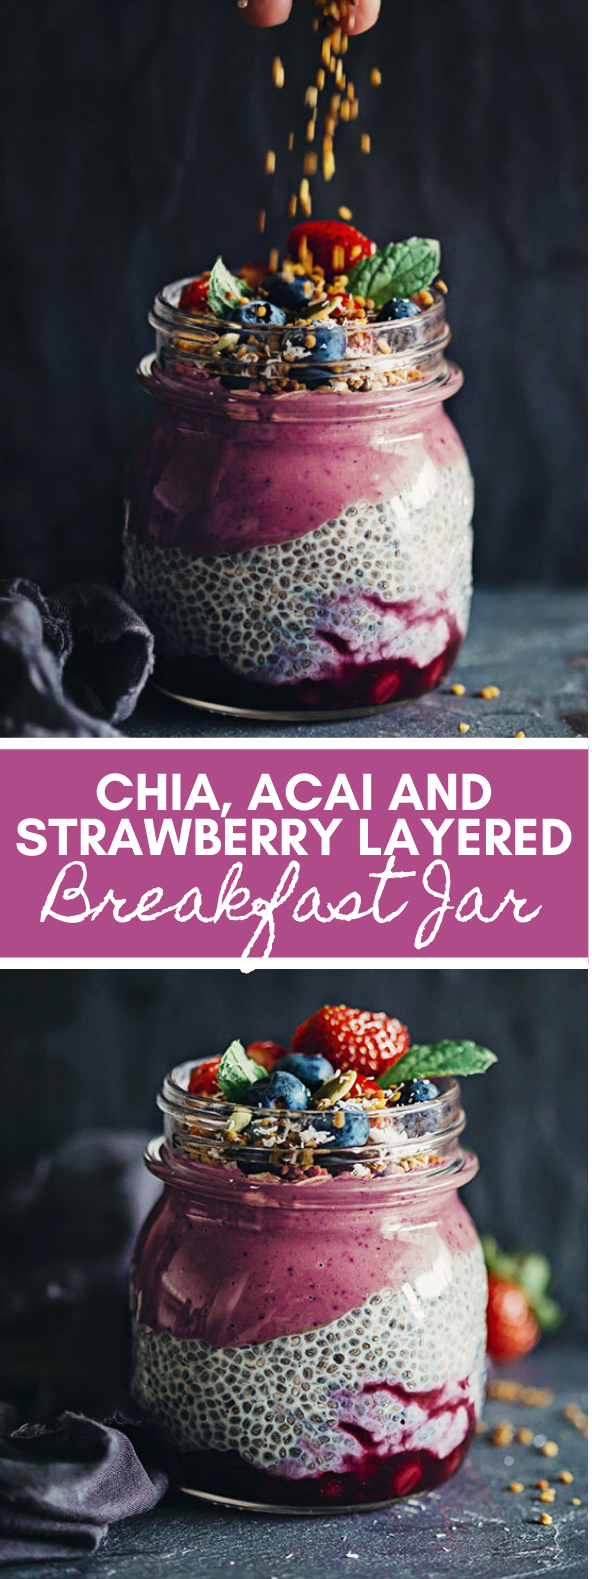 Chia, Acai and Strawberry Layered Breakfast Jar #healthy #antioxidant